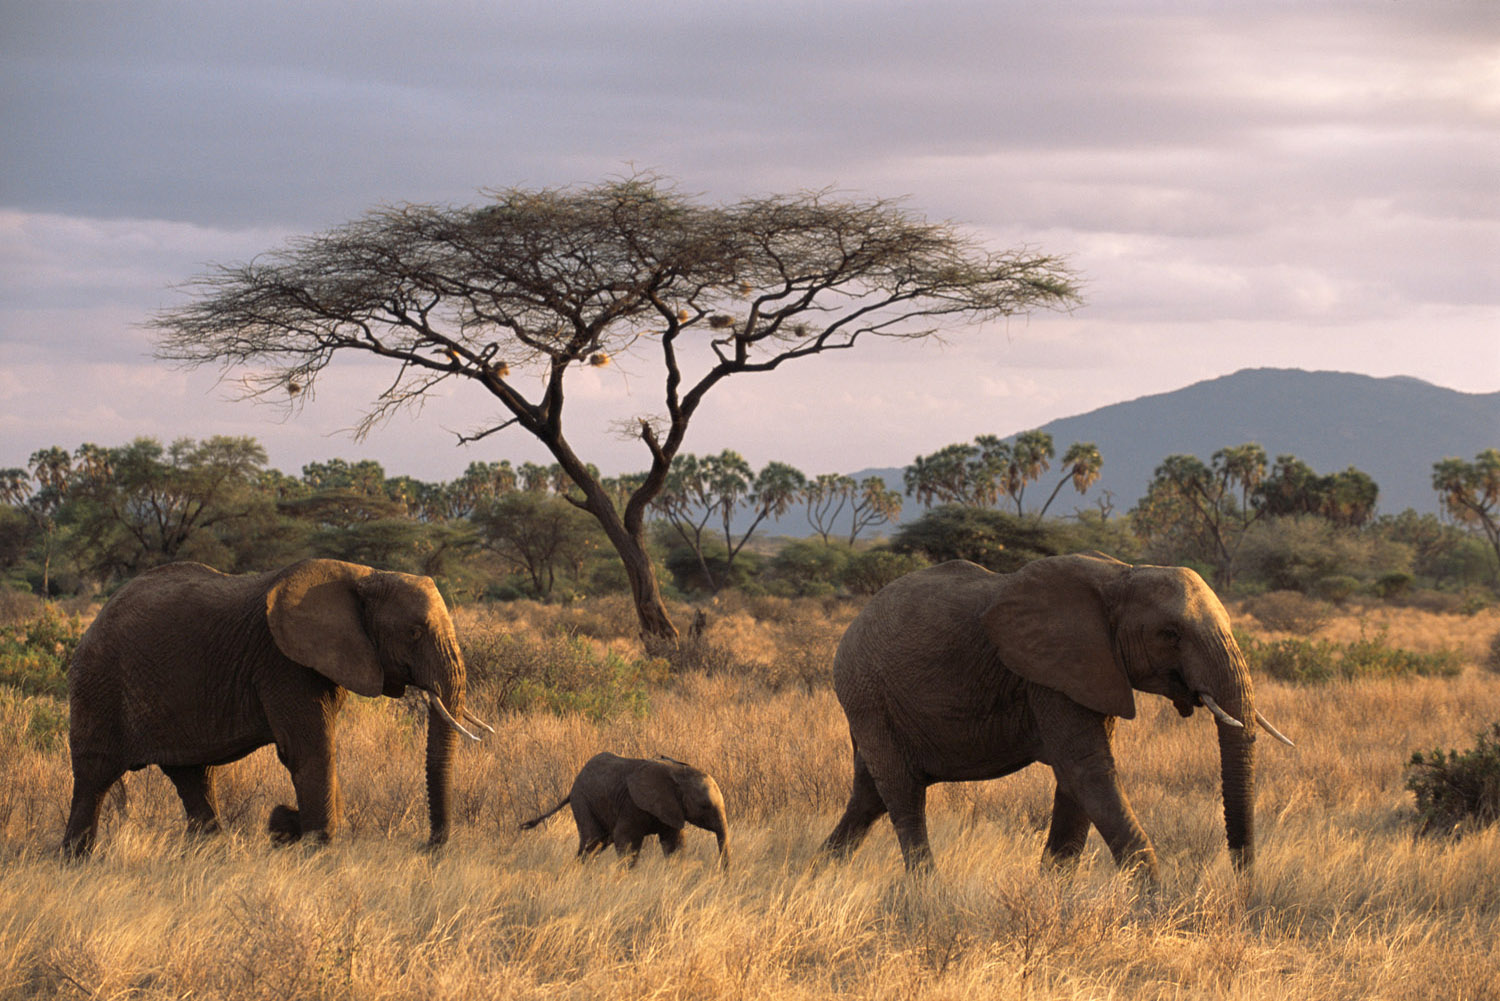 African elephant family on the move at dusk and acacia tree, Samburu National Reserve, Kenya